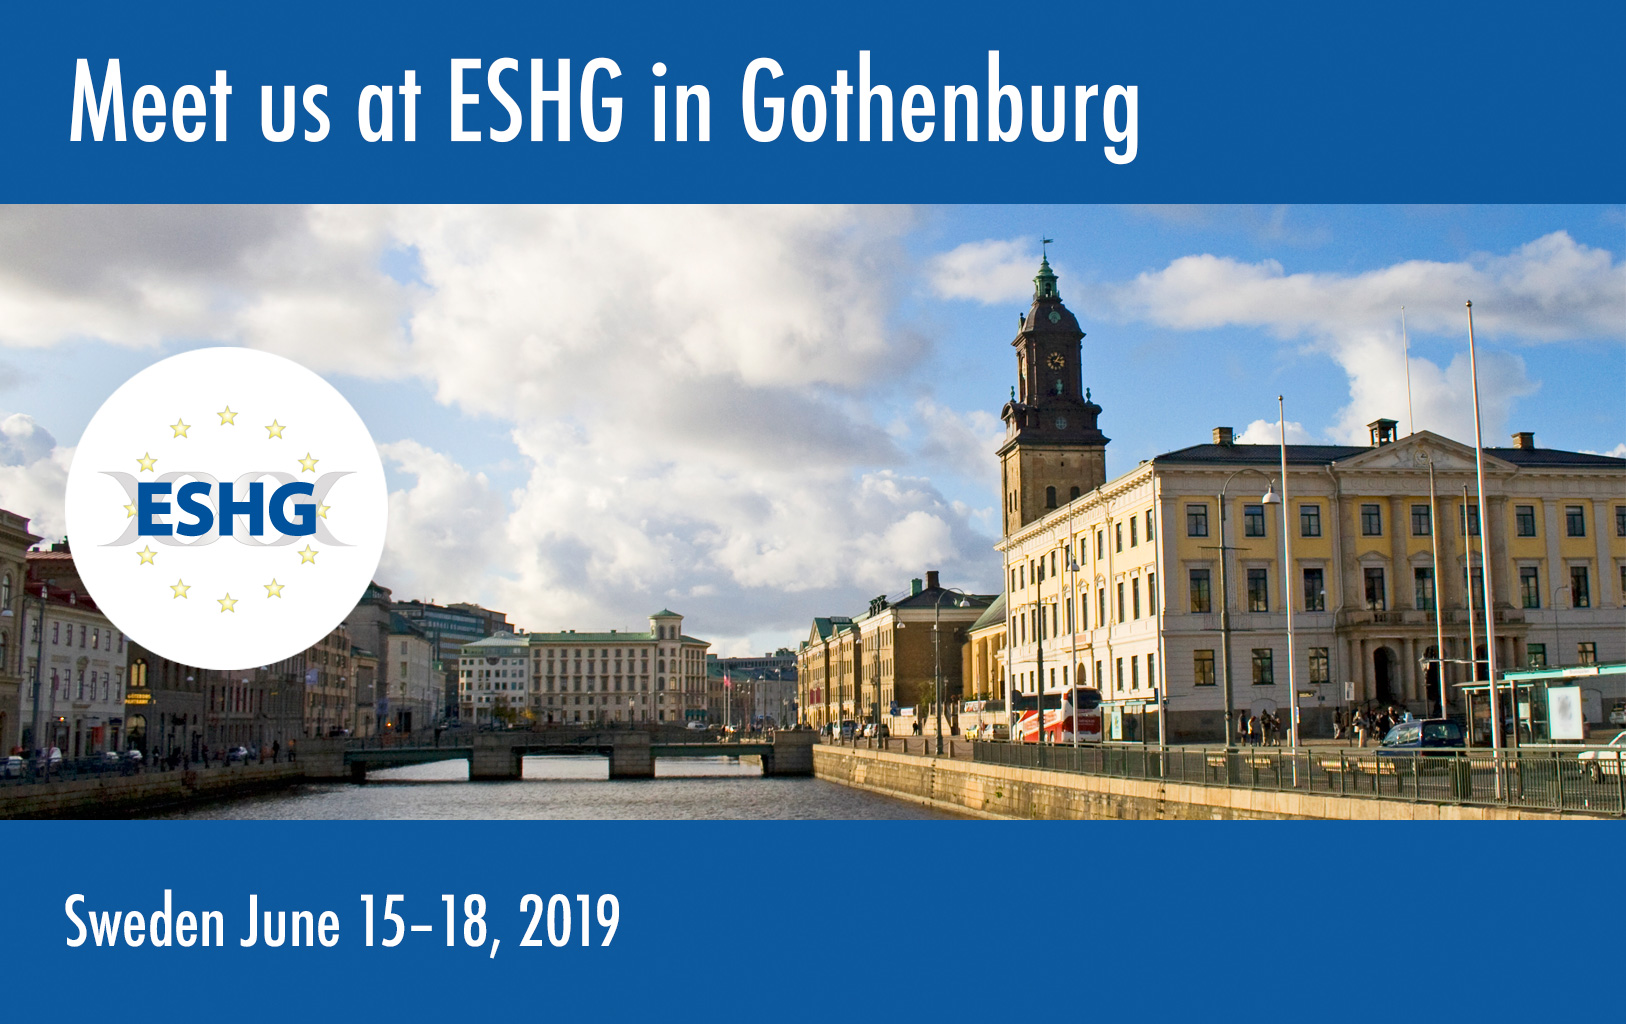 ESHG in Gothenburg